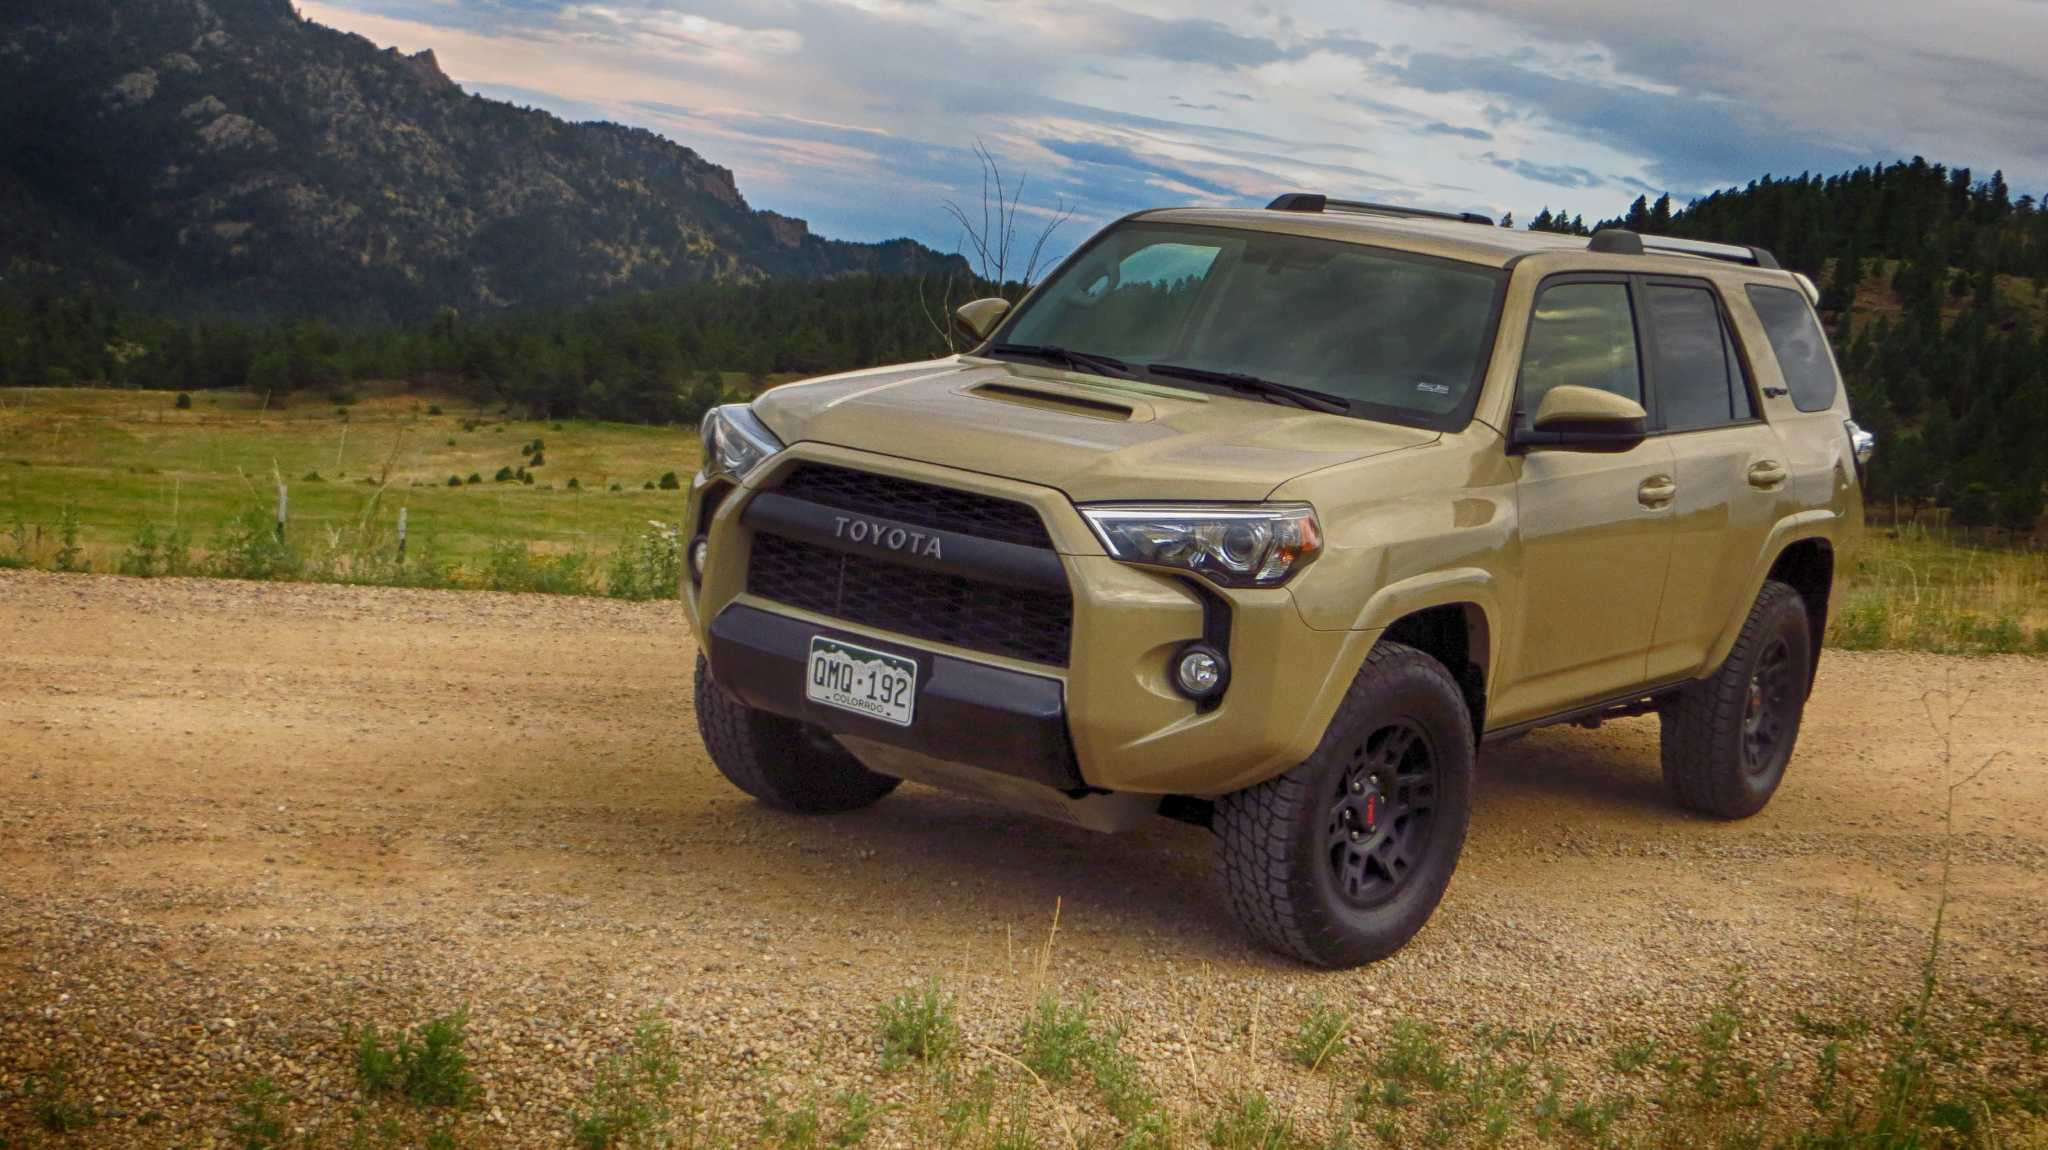 4Runner TRD Pro ready for whatever comes its way